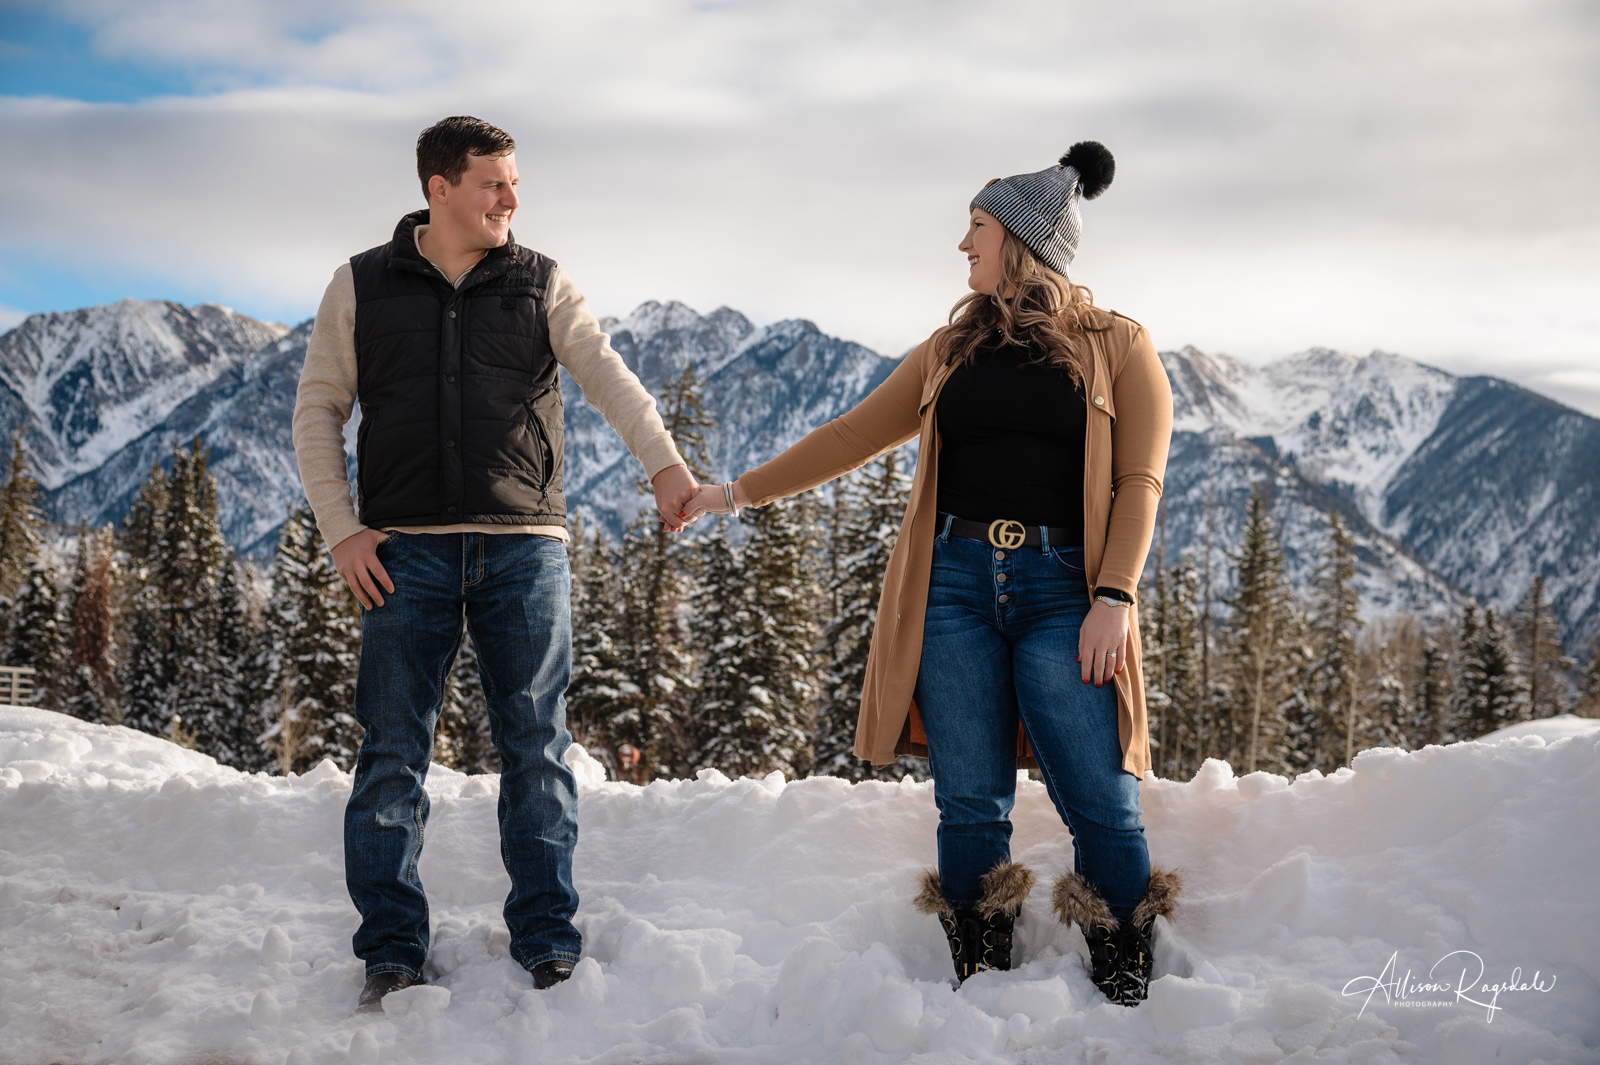 Logan & Tanner's Colorado Winter Wonderland Engagement Pictures